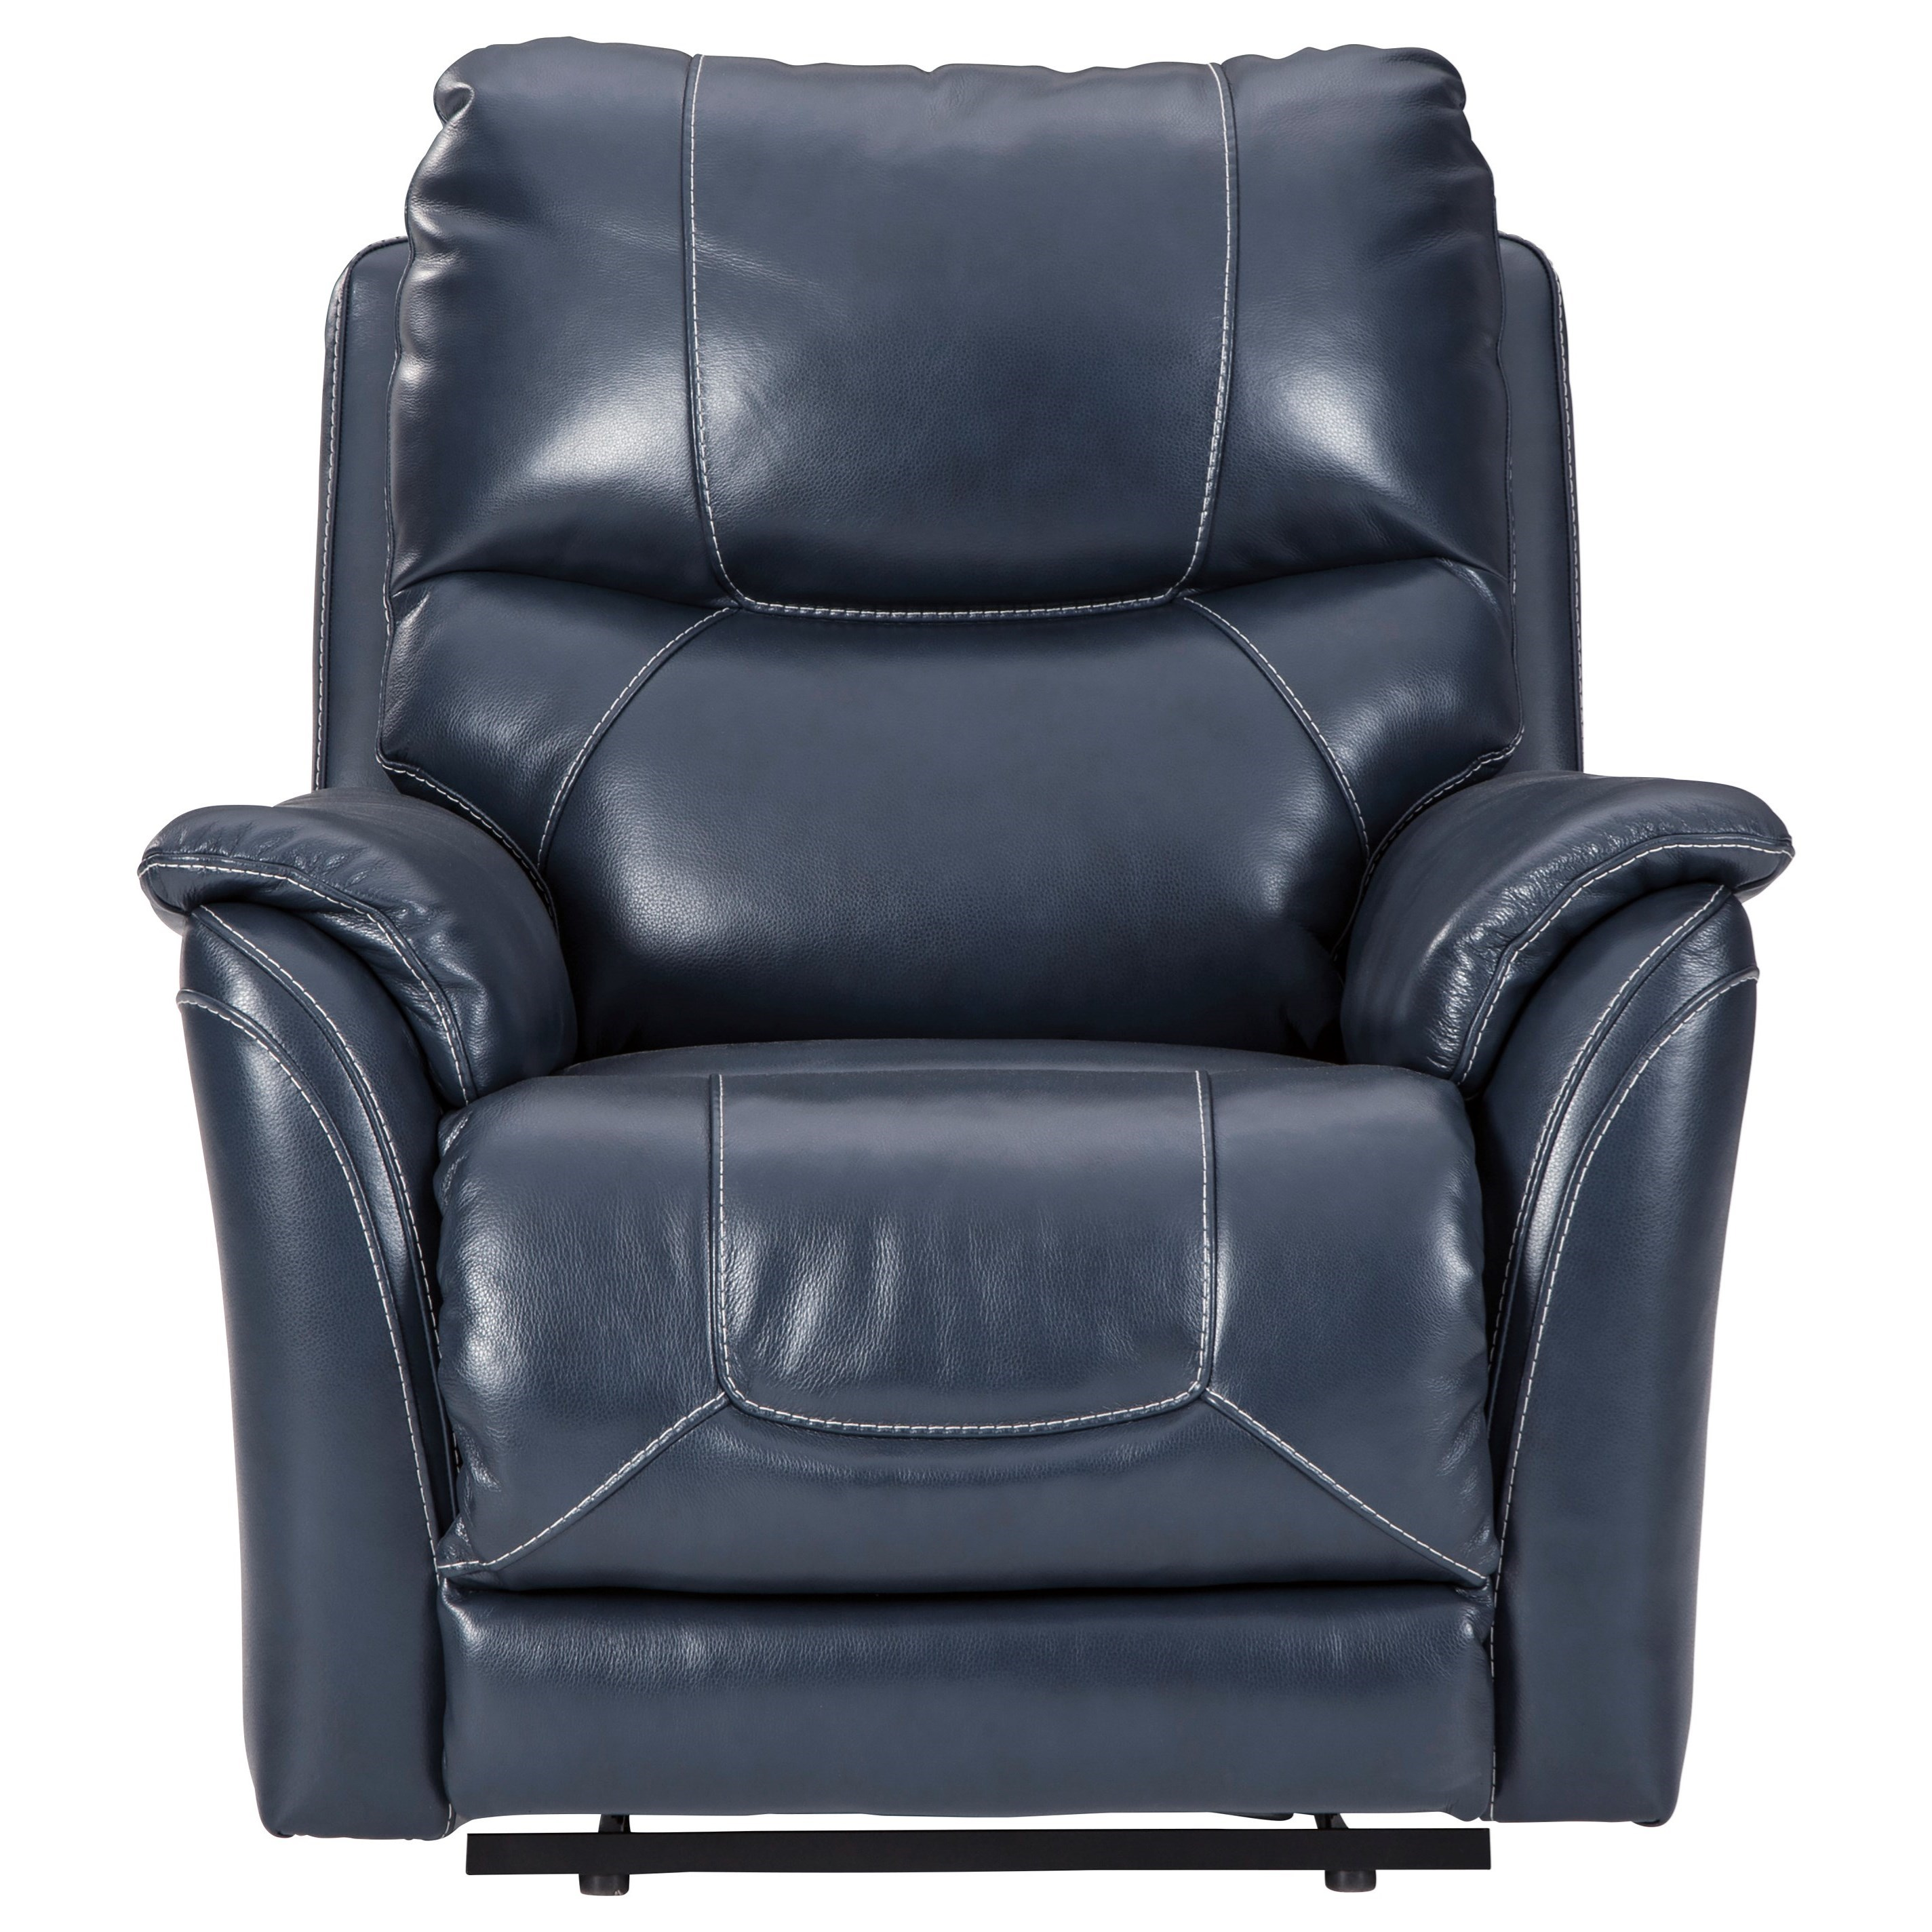 Dellington Power Recliner with Adjustable Headrest by Ashley (Signature Design) at Johnny Janosik